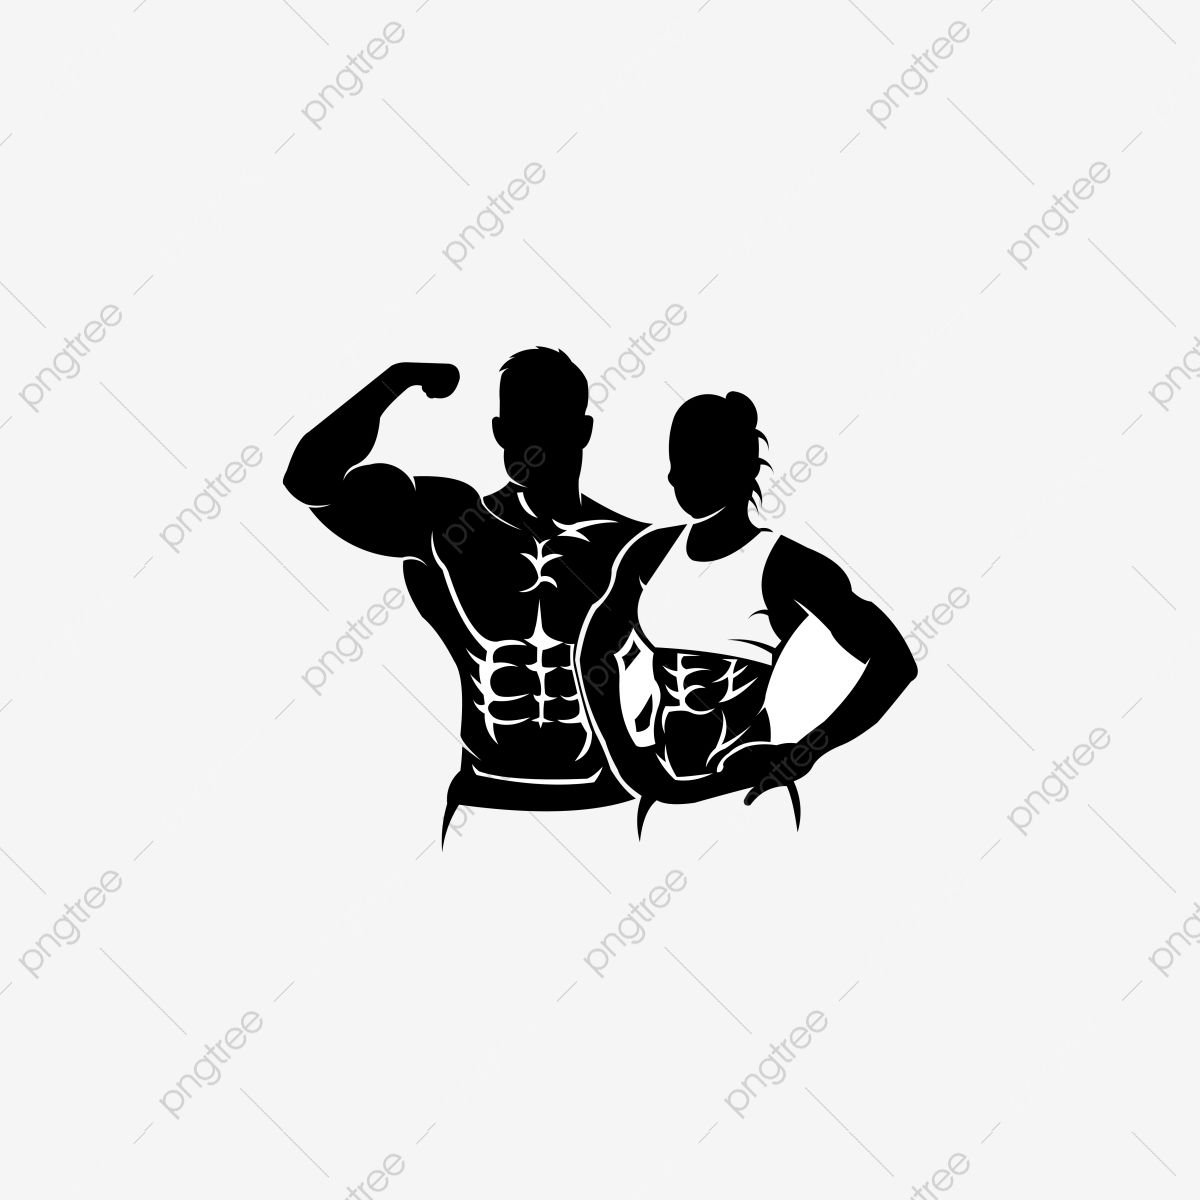 Physical Fitness Sport Gym Logo Bodybuilder With Big Muscles Posing Isolated Vector Silhouette Front View Human Clipart Logo Icons Sport Icons Png And Vector Gym Logo Fitness Backgrounds Bodybuilding Logo